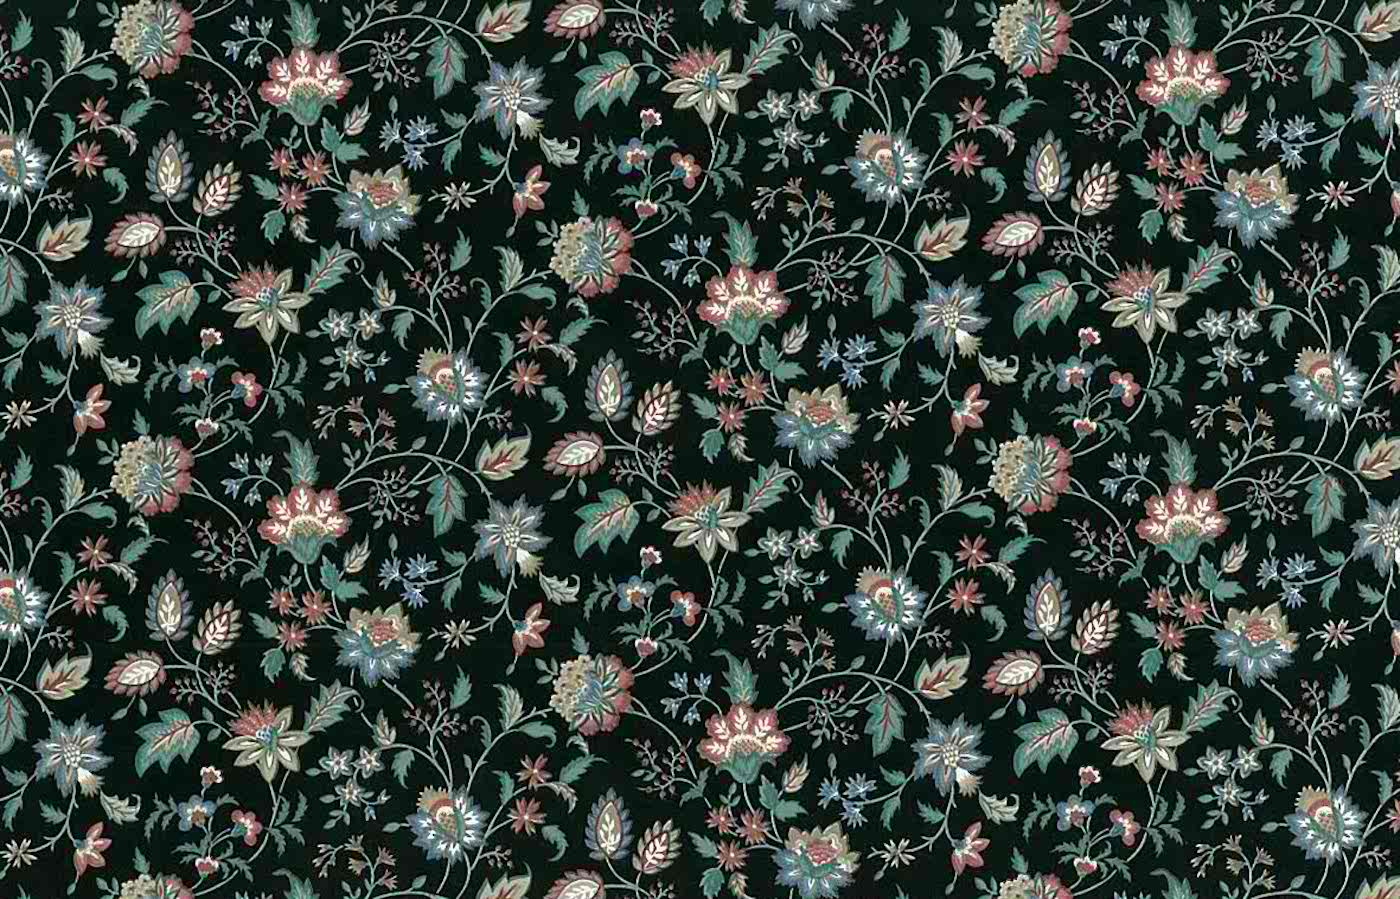 Paisley Vintage Wallpaper Black Green Blue Rose Floral GI2011 D Rs